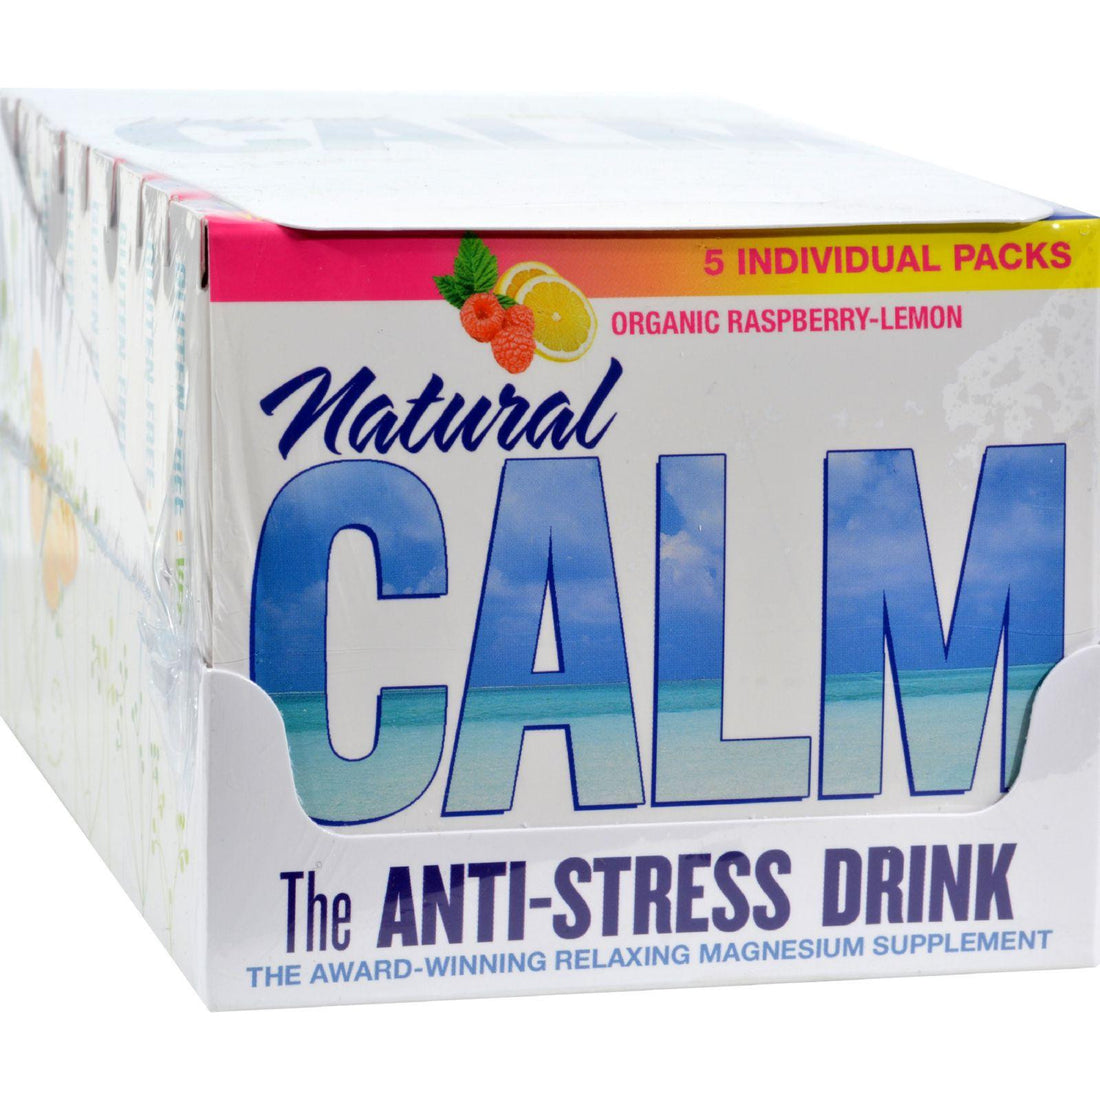 Mother Mantis: Natural Vitality Calm Counter Display - Raspberry Lemon - Case Of 8 - 5 Packs Natural Vitality